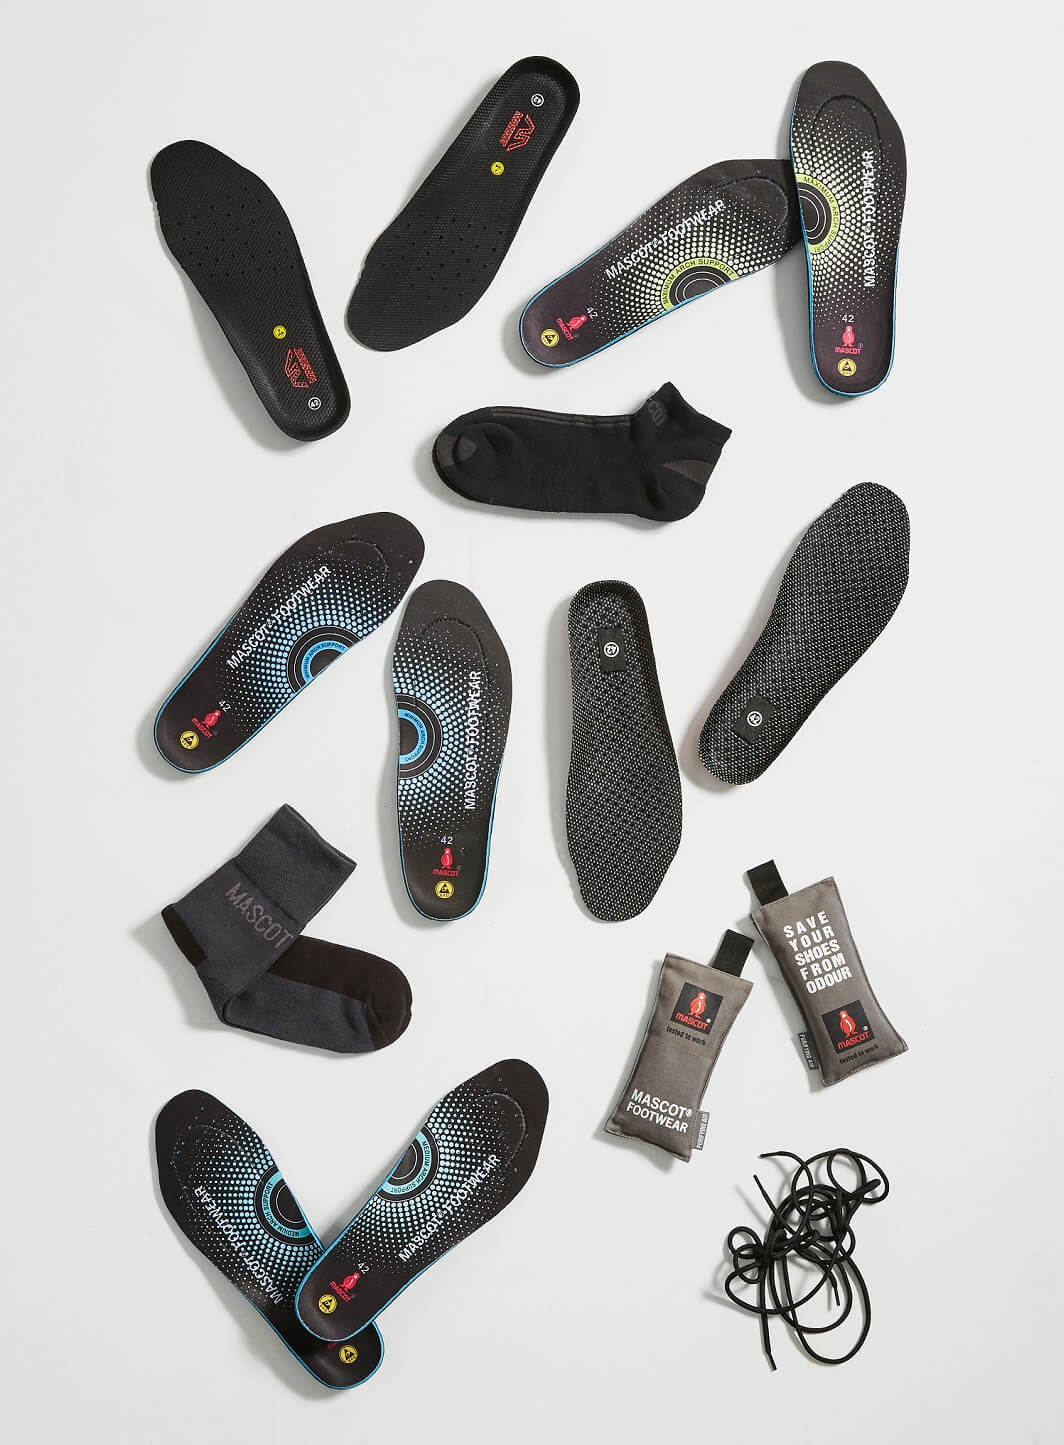 MASCOT® In Soles, Laces & Socks - Collage